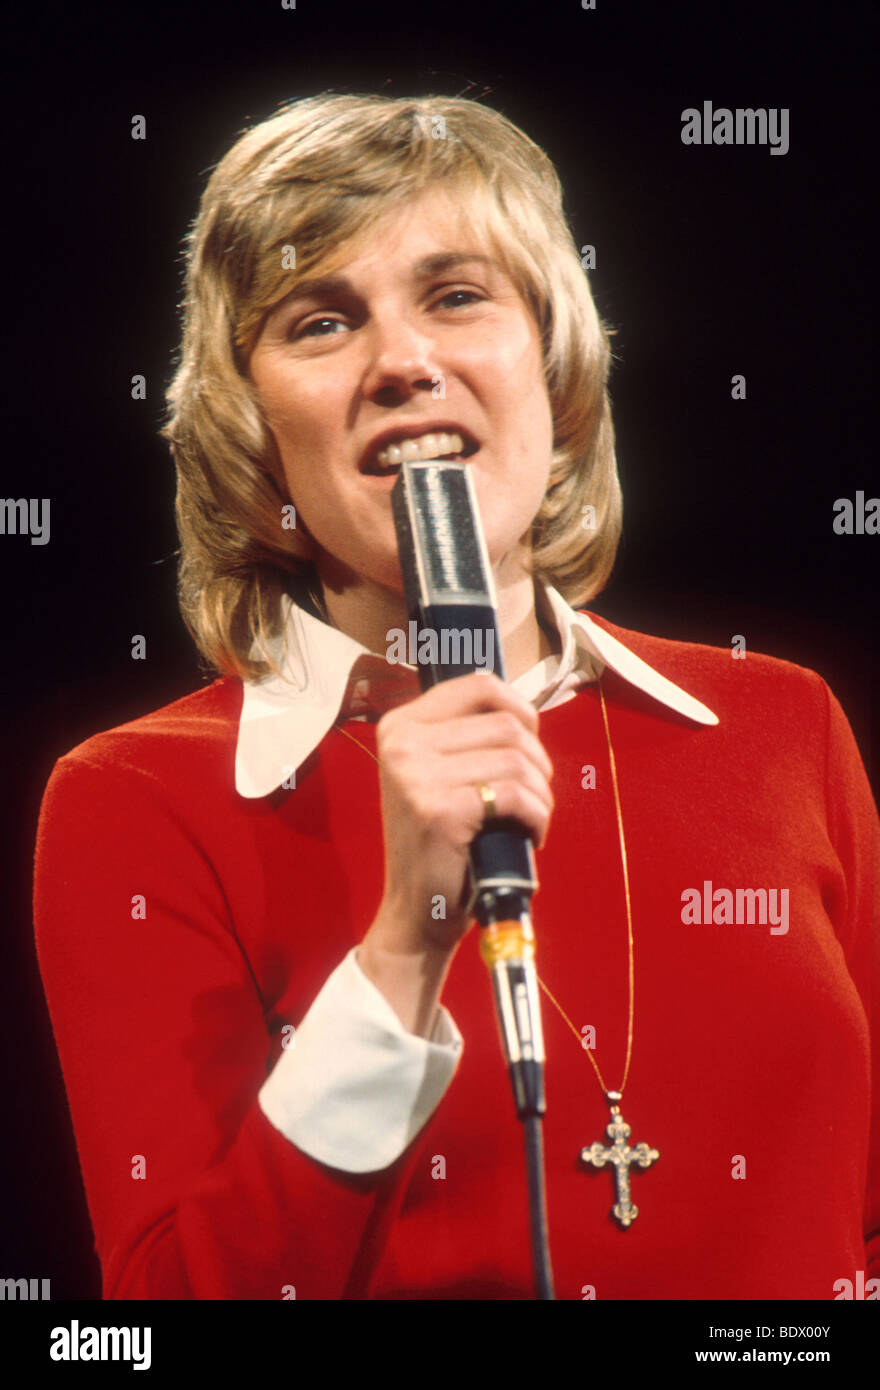 ANNE MURRAY - Canadioan singer about 1975 - Stock Image